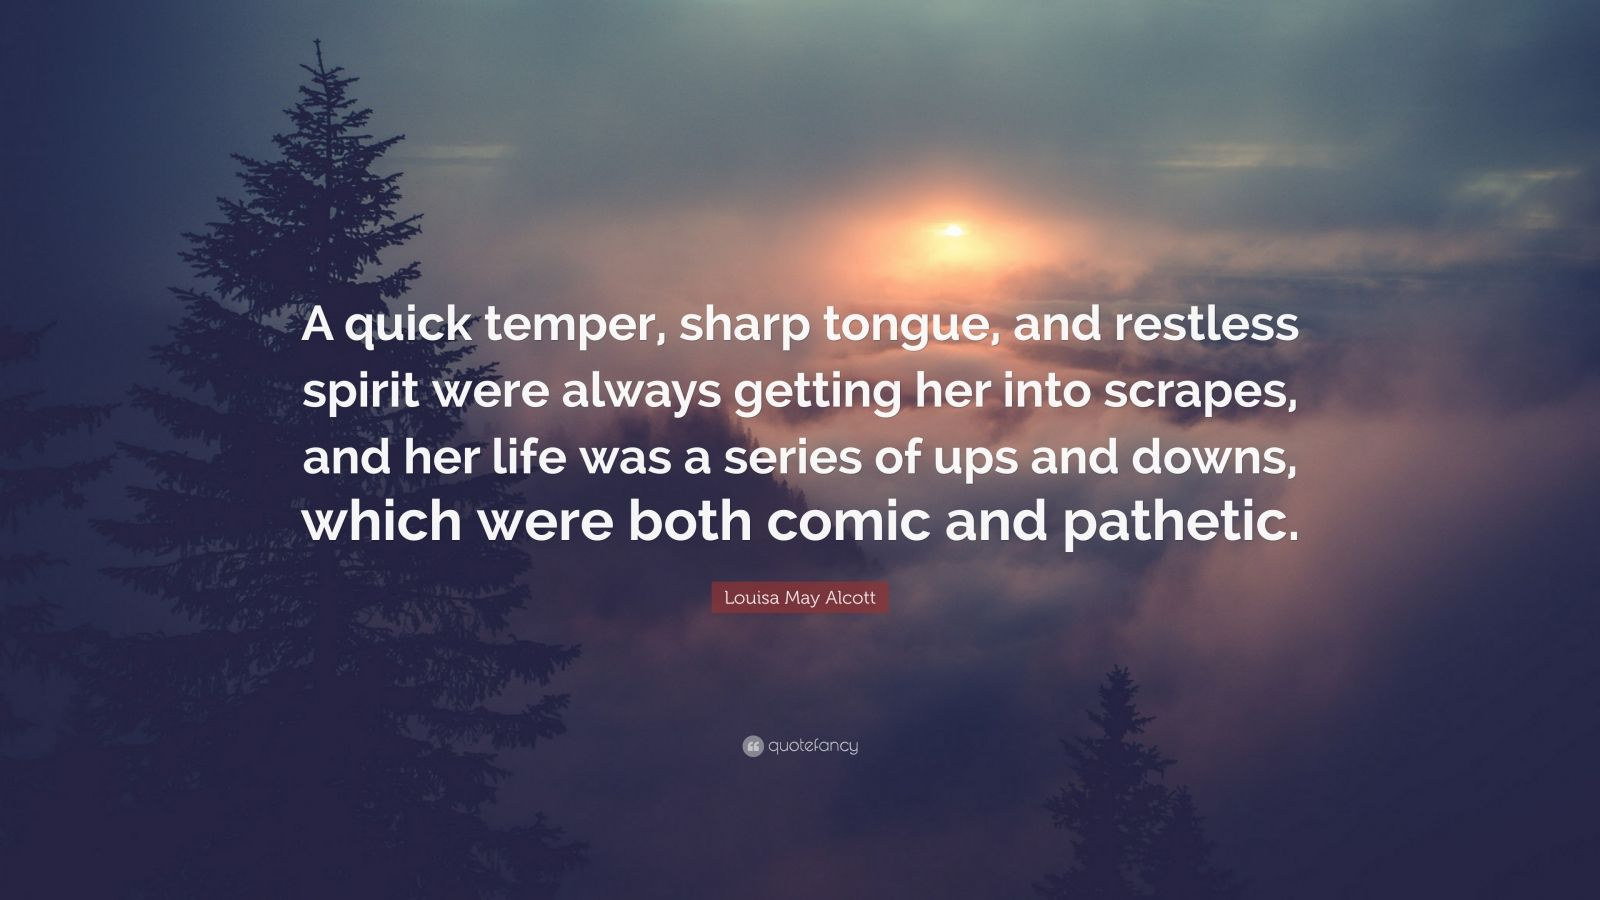 """Louisa May Alcott Quote: """"A quick temper, sharp tongue, and restless spirit were always getting her into scrapes, and her life was a series of ups and downs, which were both comic and pathetic."""""""